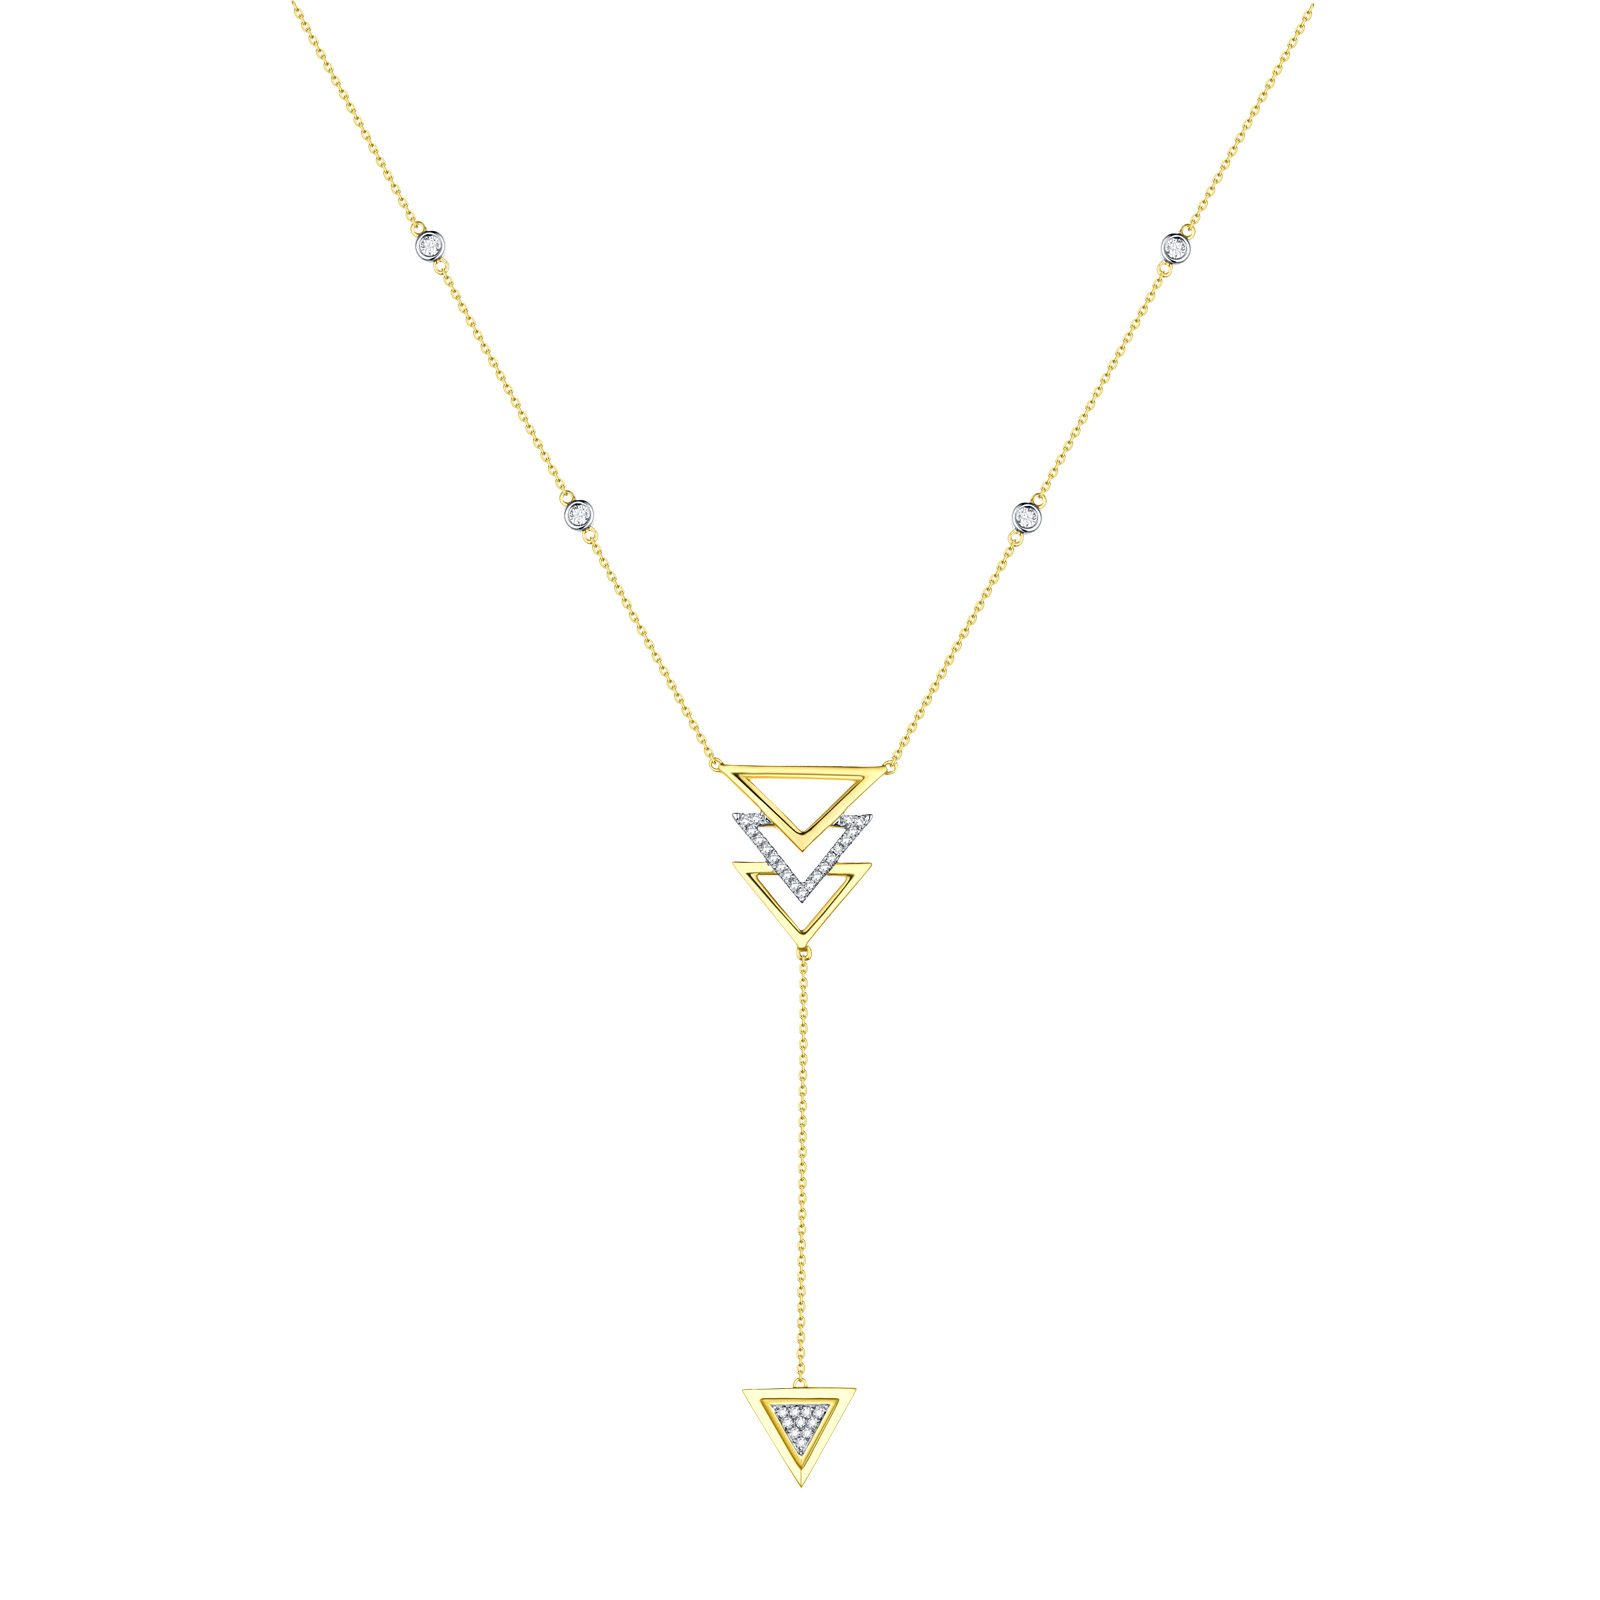 NL25995WHT- 14K Yellow Gold Diamond Necklace, 0.14 TCW